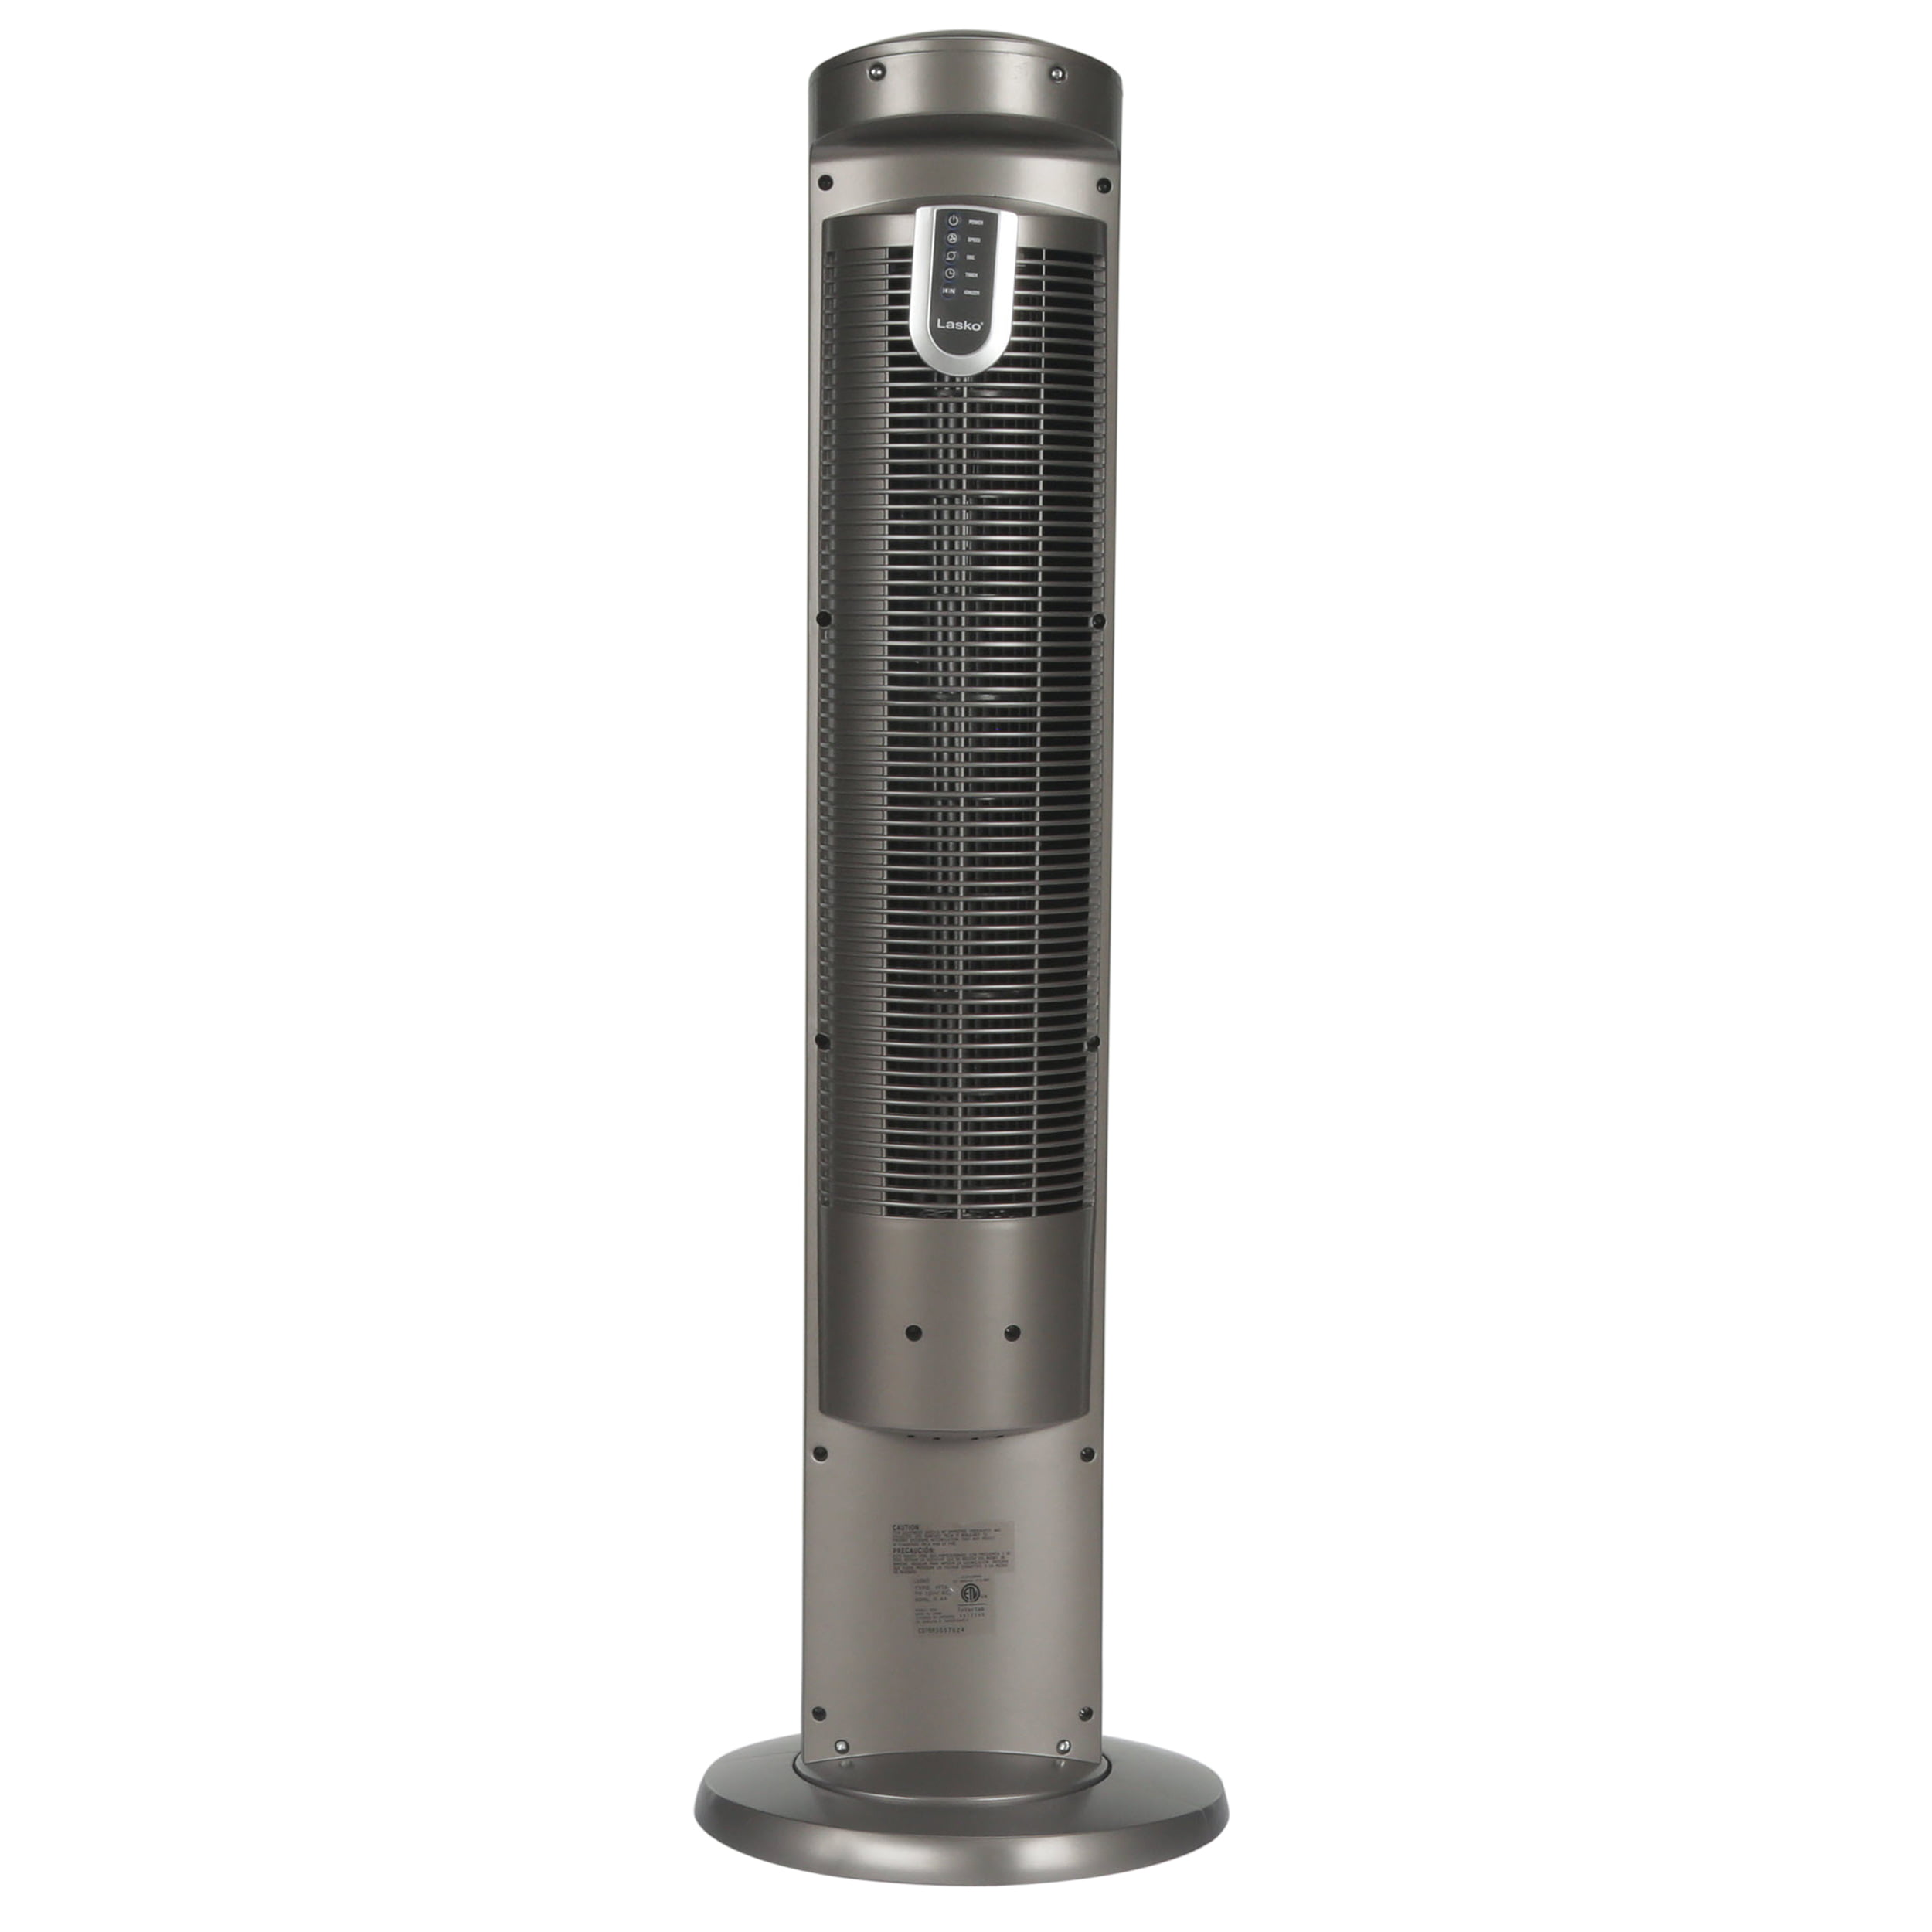 Lasko 42 Wind Curve 3 Speed Tower Fan With Fresh Air Ionizer Model Left Drivers Side Light Blue Positive Gray Negative 2554 Remote